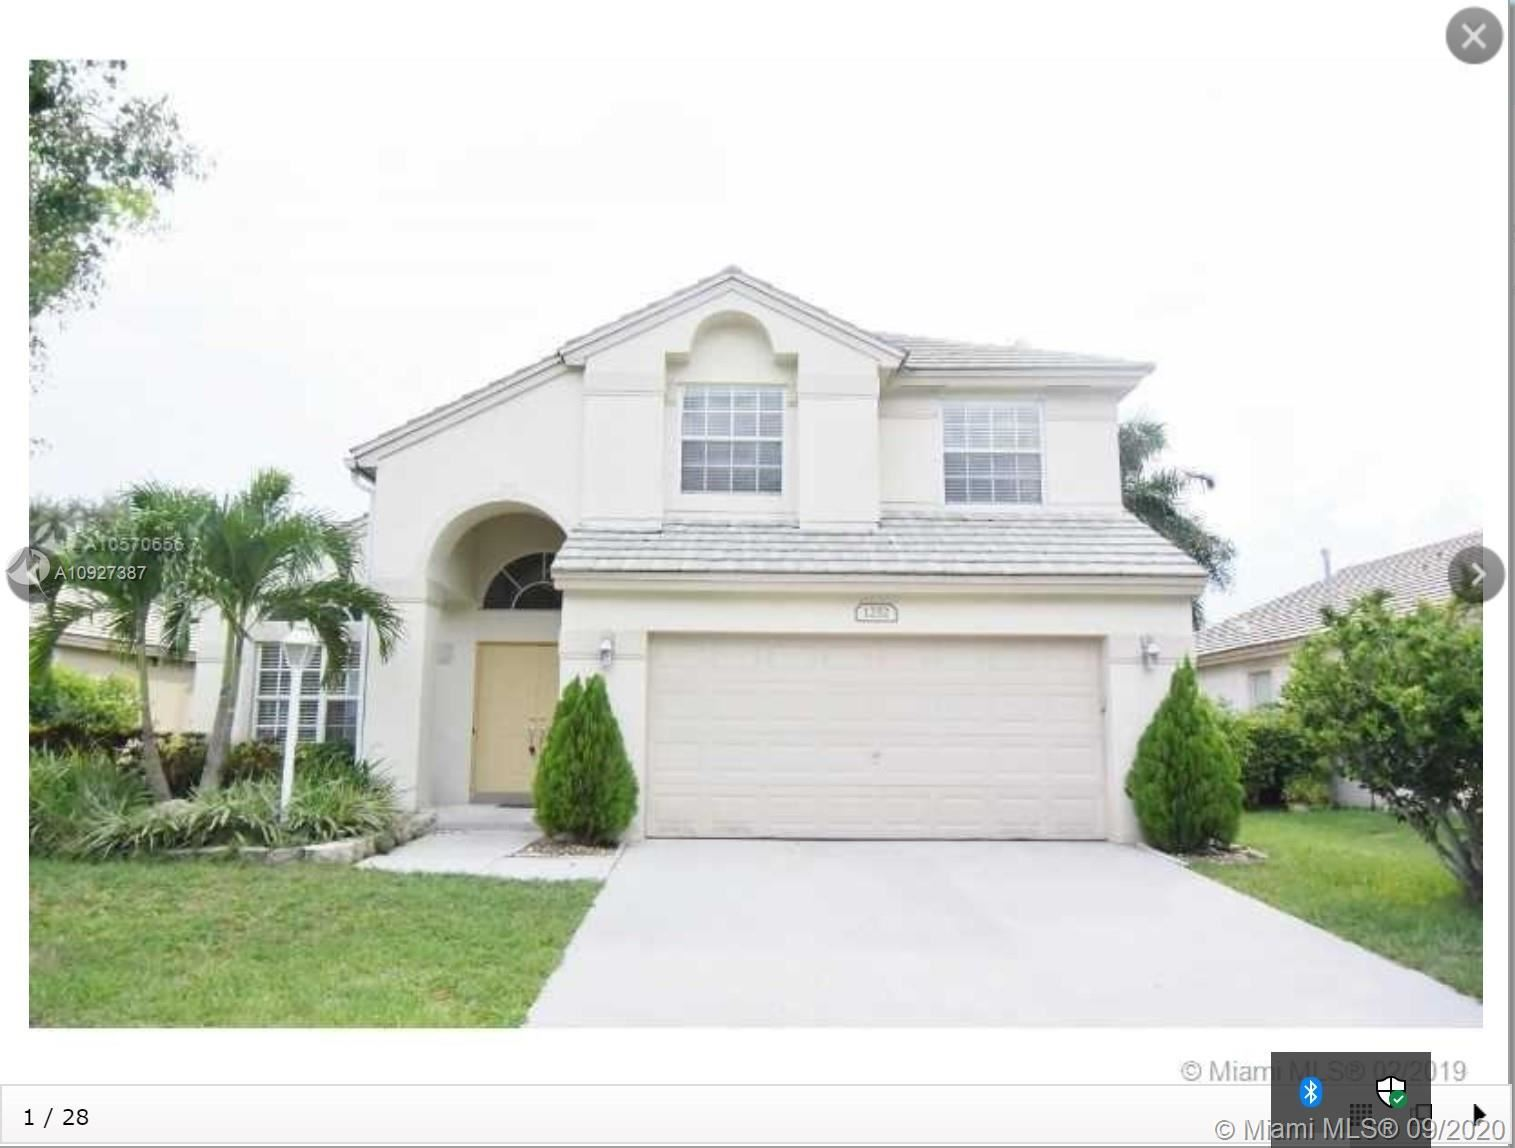 Photo of 1252 NW 143rd Ave, Pembroke Pines, FL 33028 (MLS # A10927387)